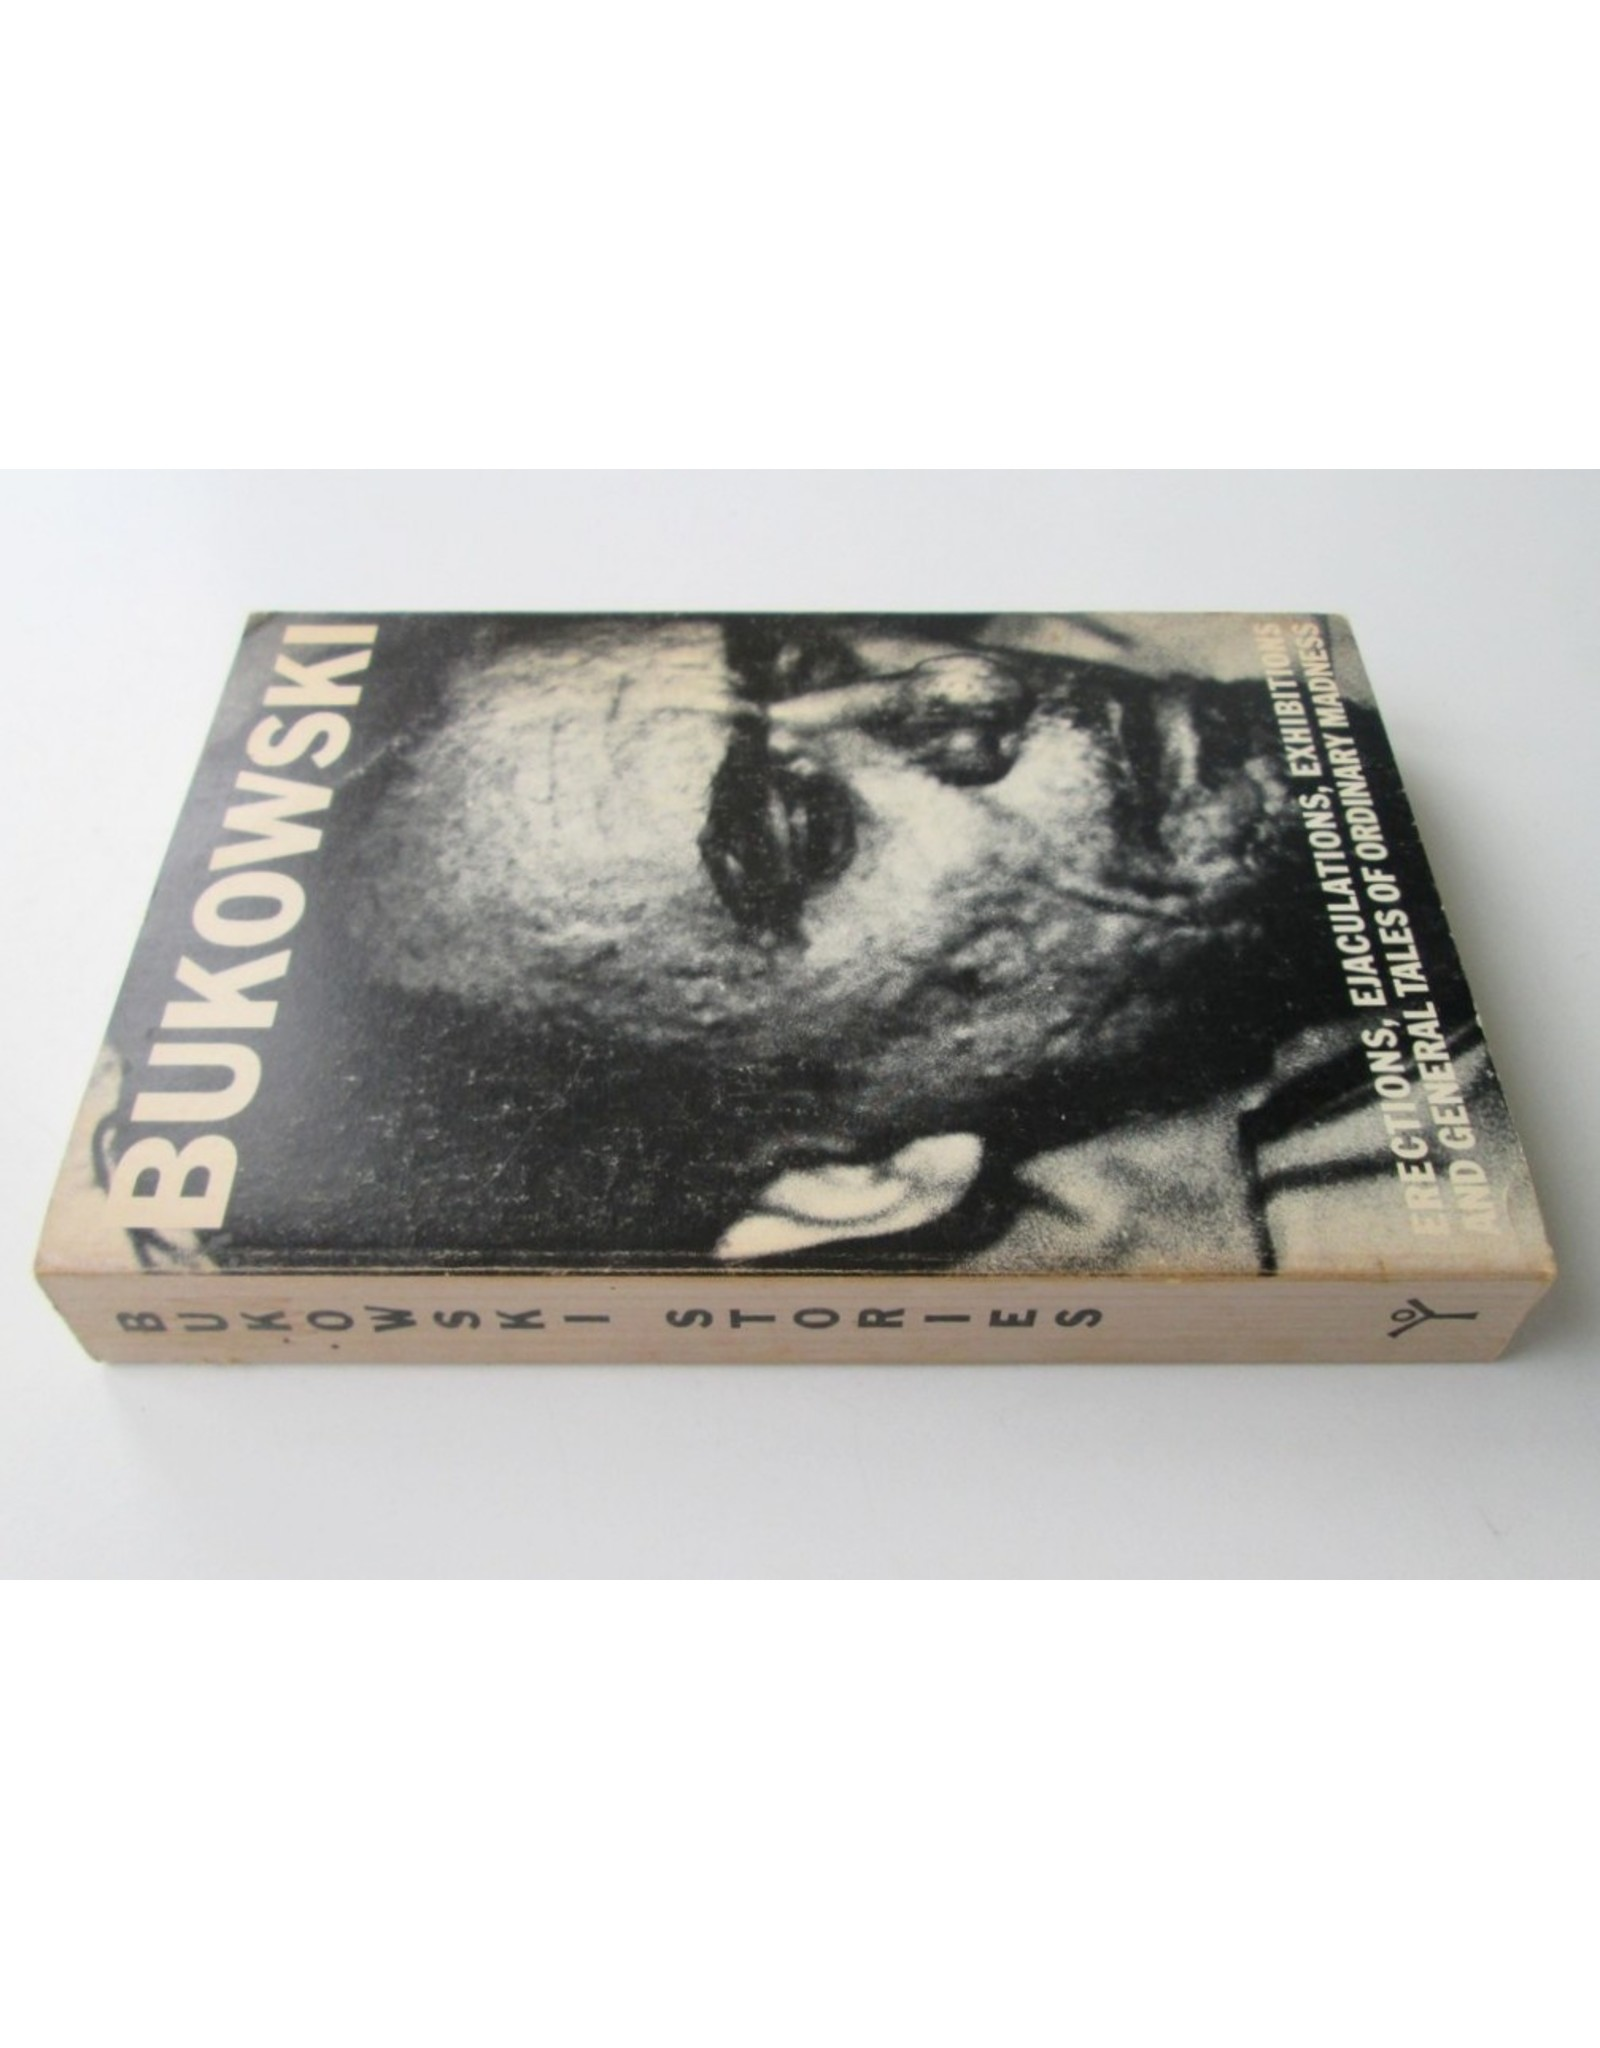 Charles Bukowski - Erections, Ejaculations, Exhibitions and General Tales of Ordinary Madness. Edited by Gail Chiarrello